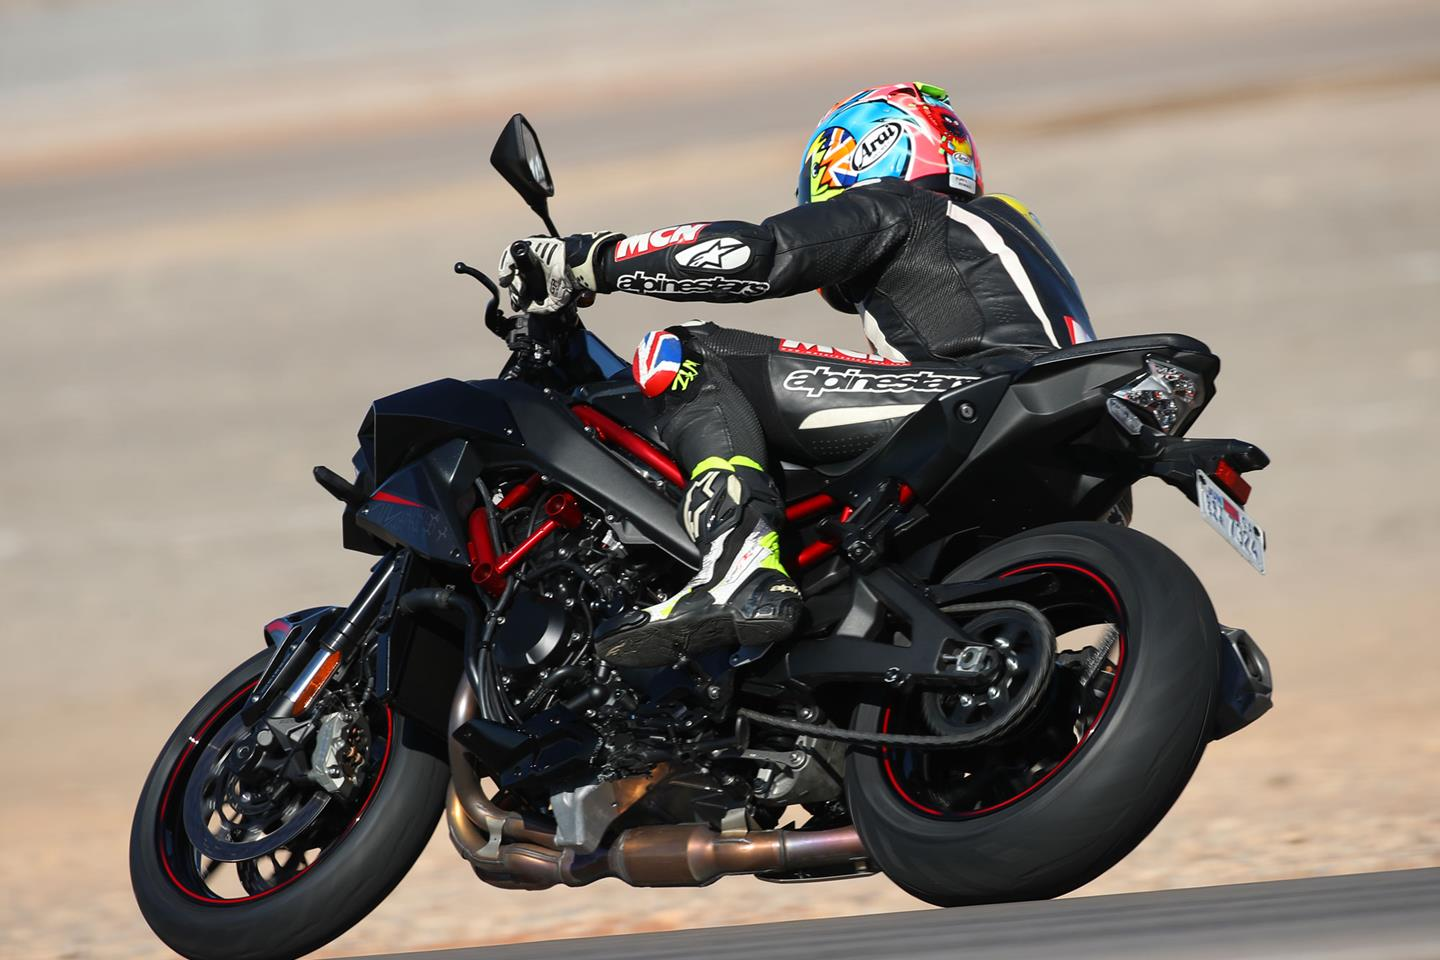 2020 KAWASAKI Z H2 REVIEW: STREET AND TRACK (17 FAST FACTS